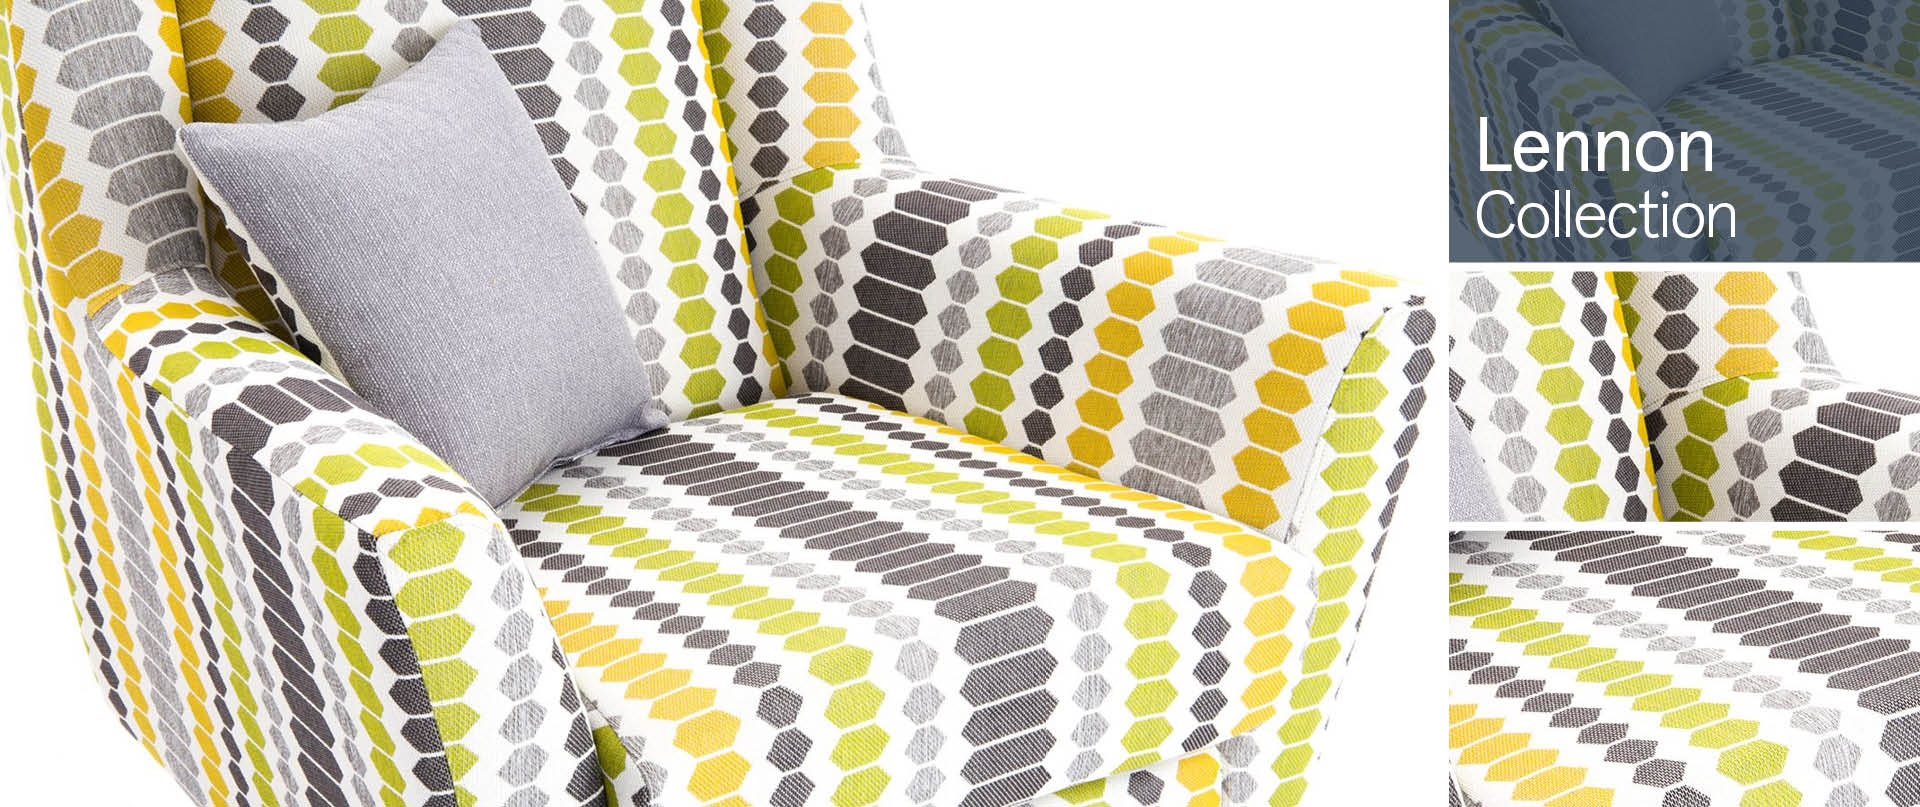 Lennon Chairs and Footstools Ranges